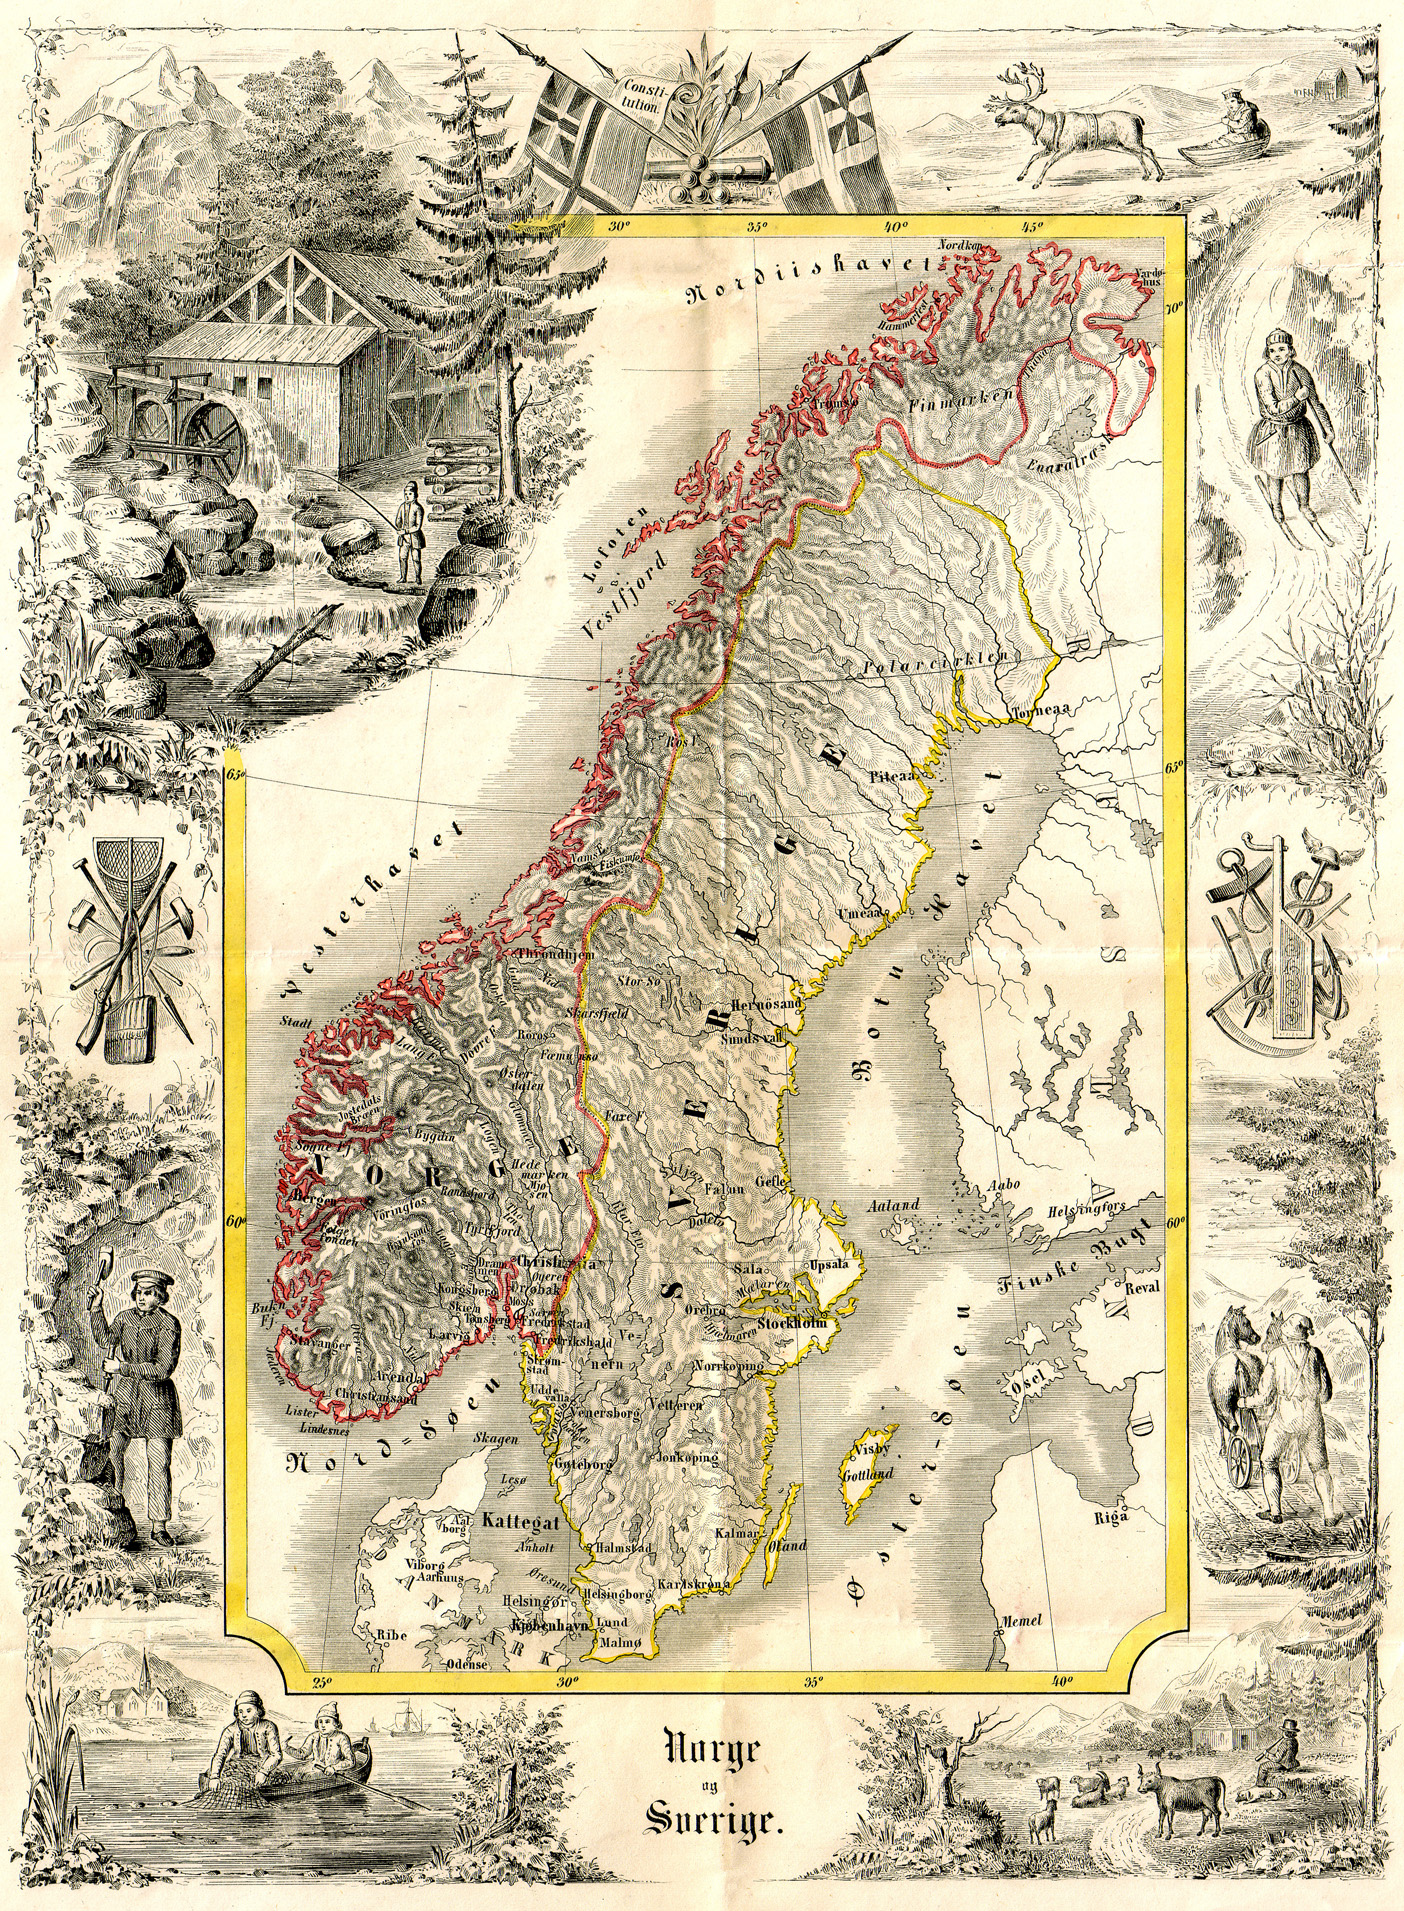 https://i1.wp.com/upload.wikimedia.org/wikipedia/commons/b/bd/Norge_og_Sverige_1847_copy.jpg